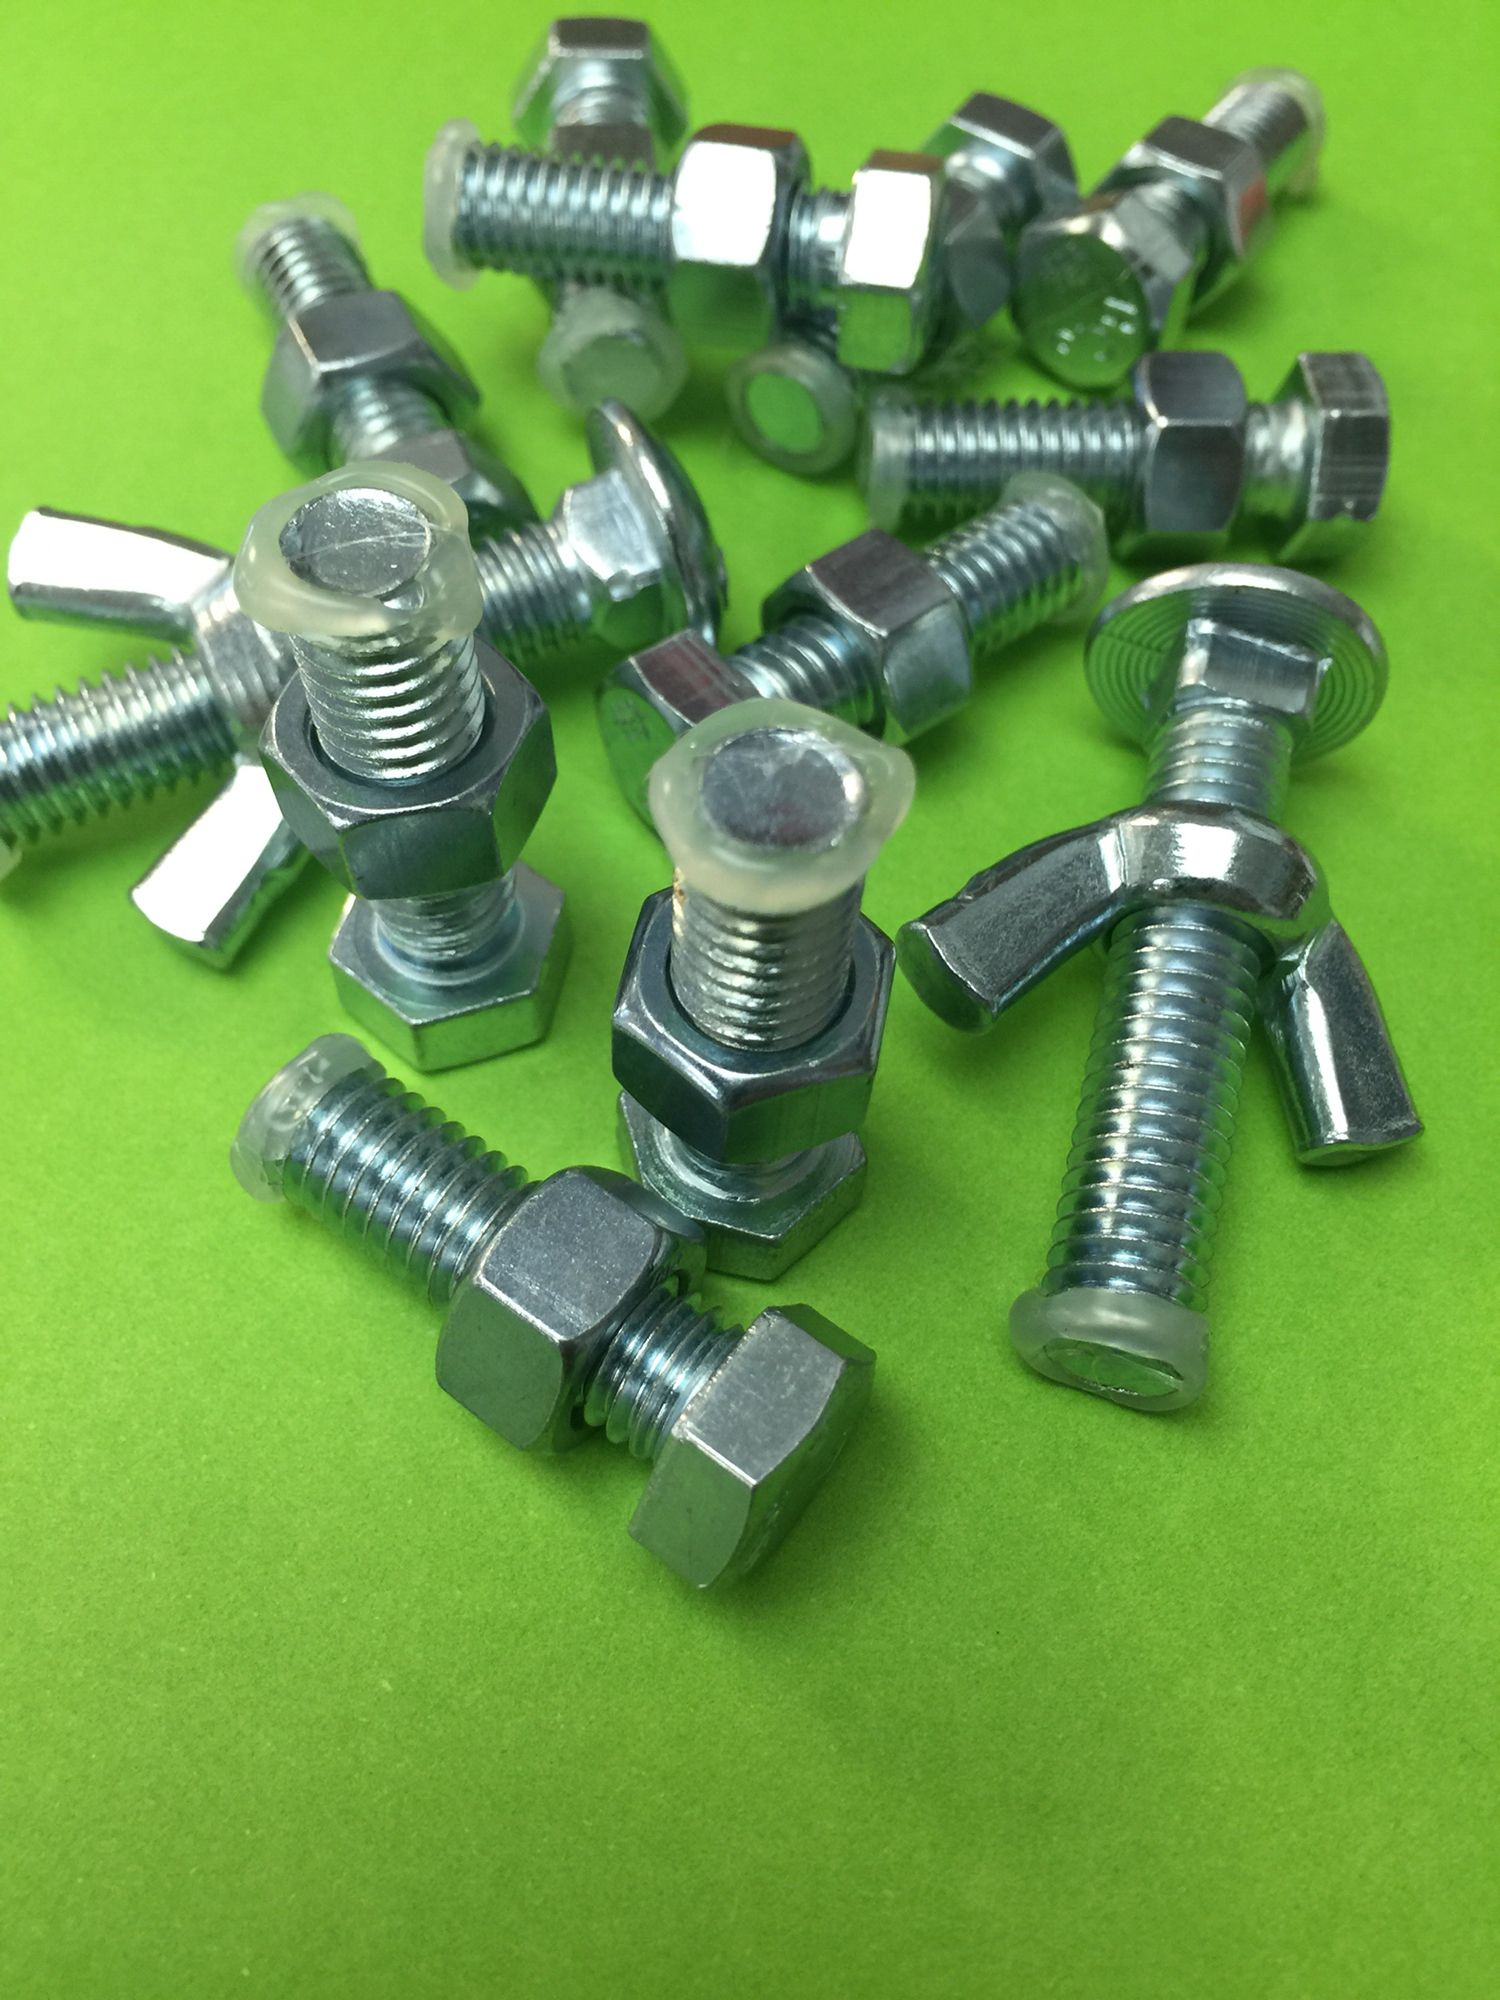 Cheap classroom fid toys Buy nuts and bolts from a hardware